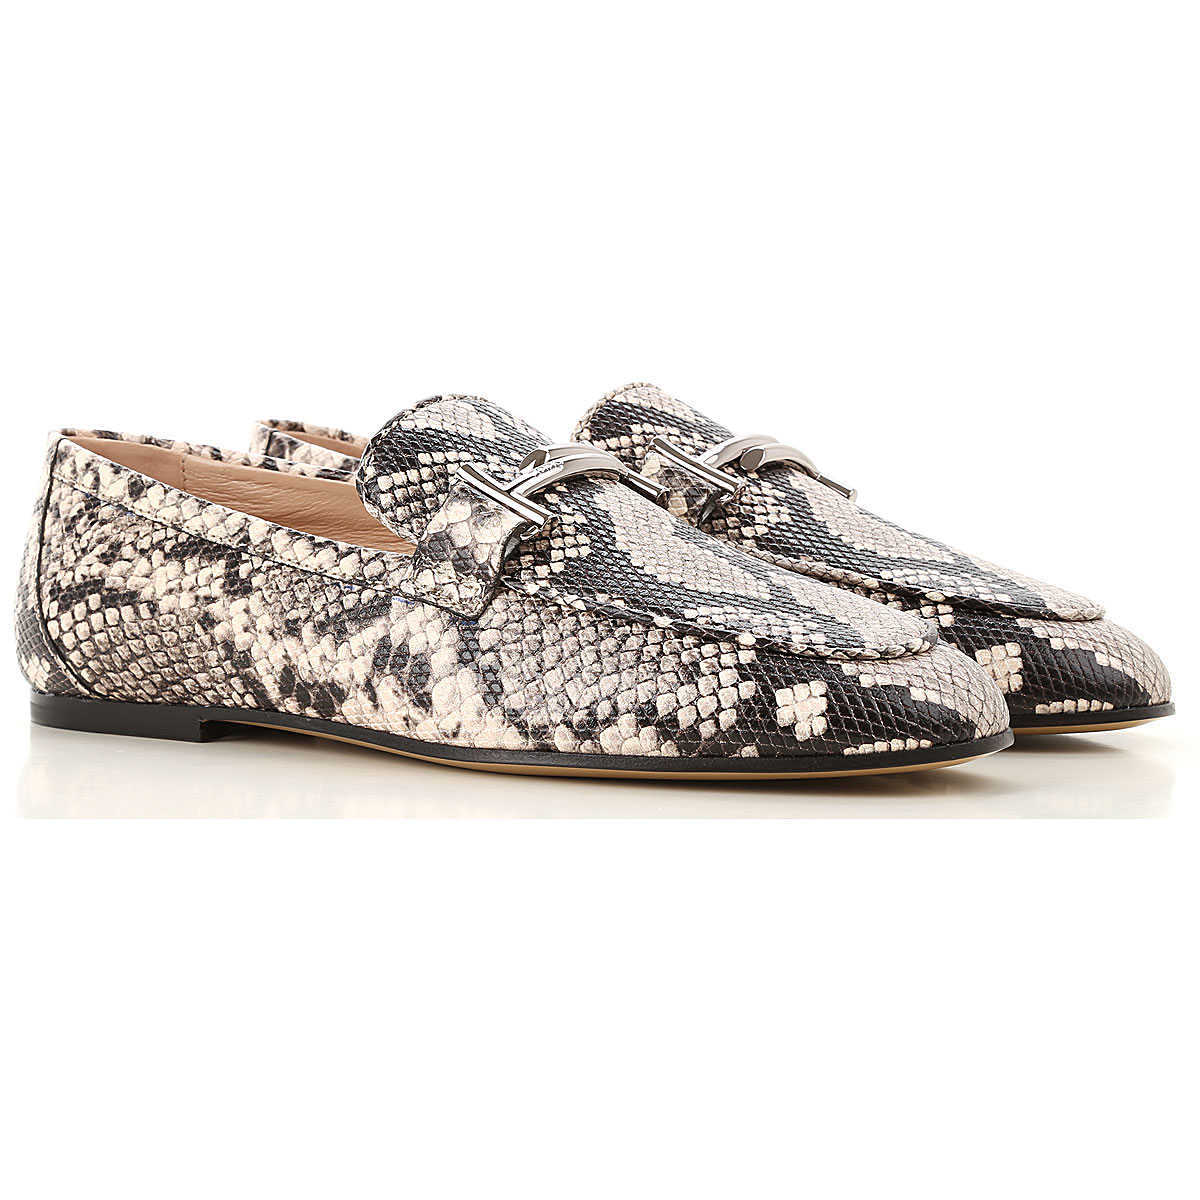 Tods Loafers for Women Stone Grey Canada - GOOFASH - Womens FLAT SHOES